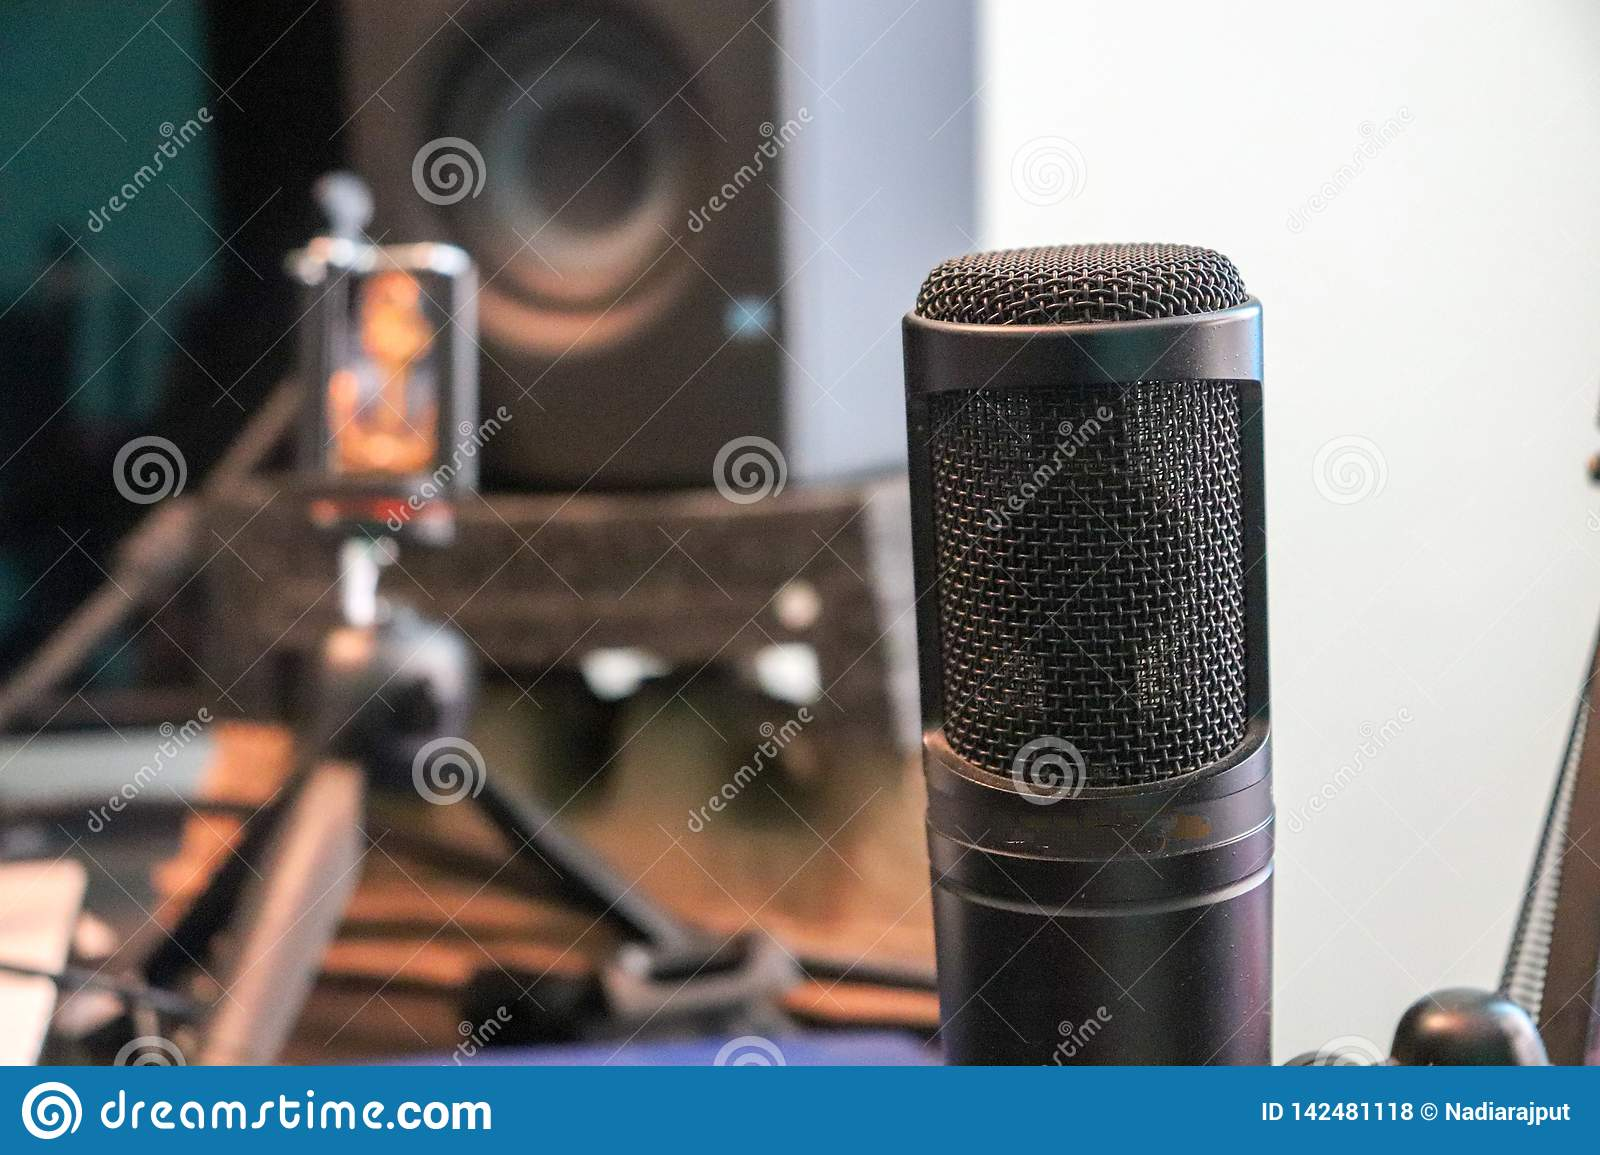 Condenser microphone in a recording studio